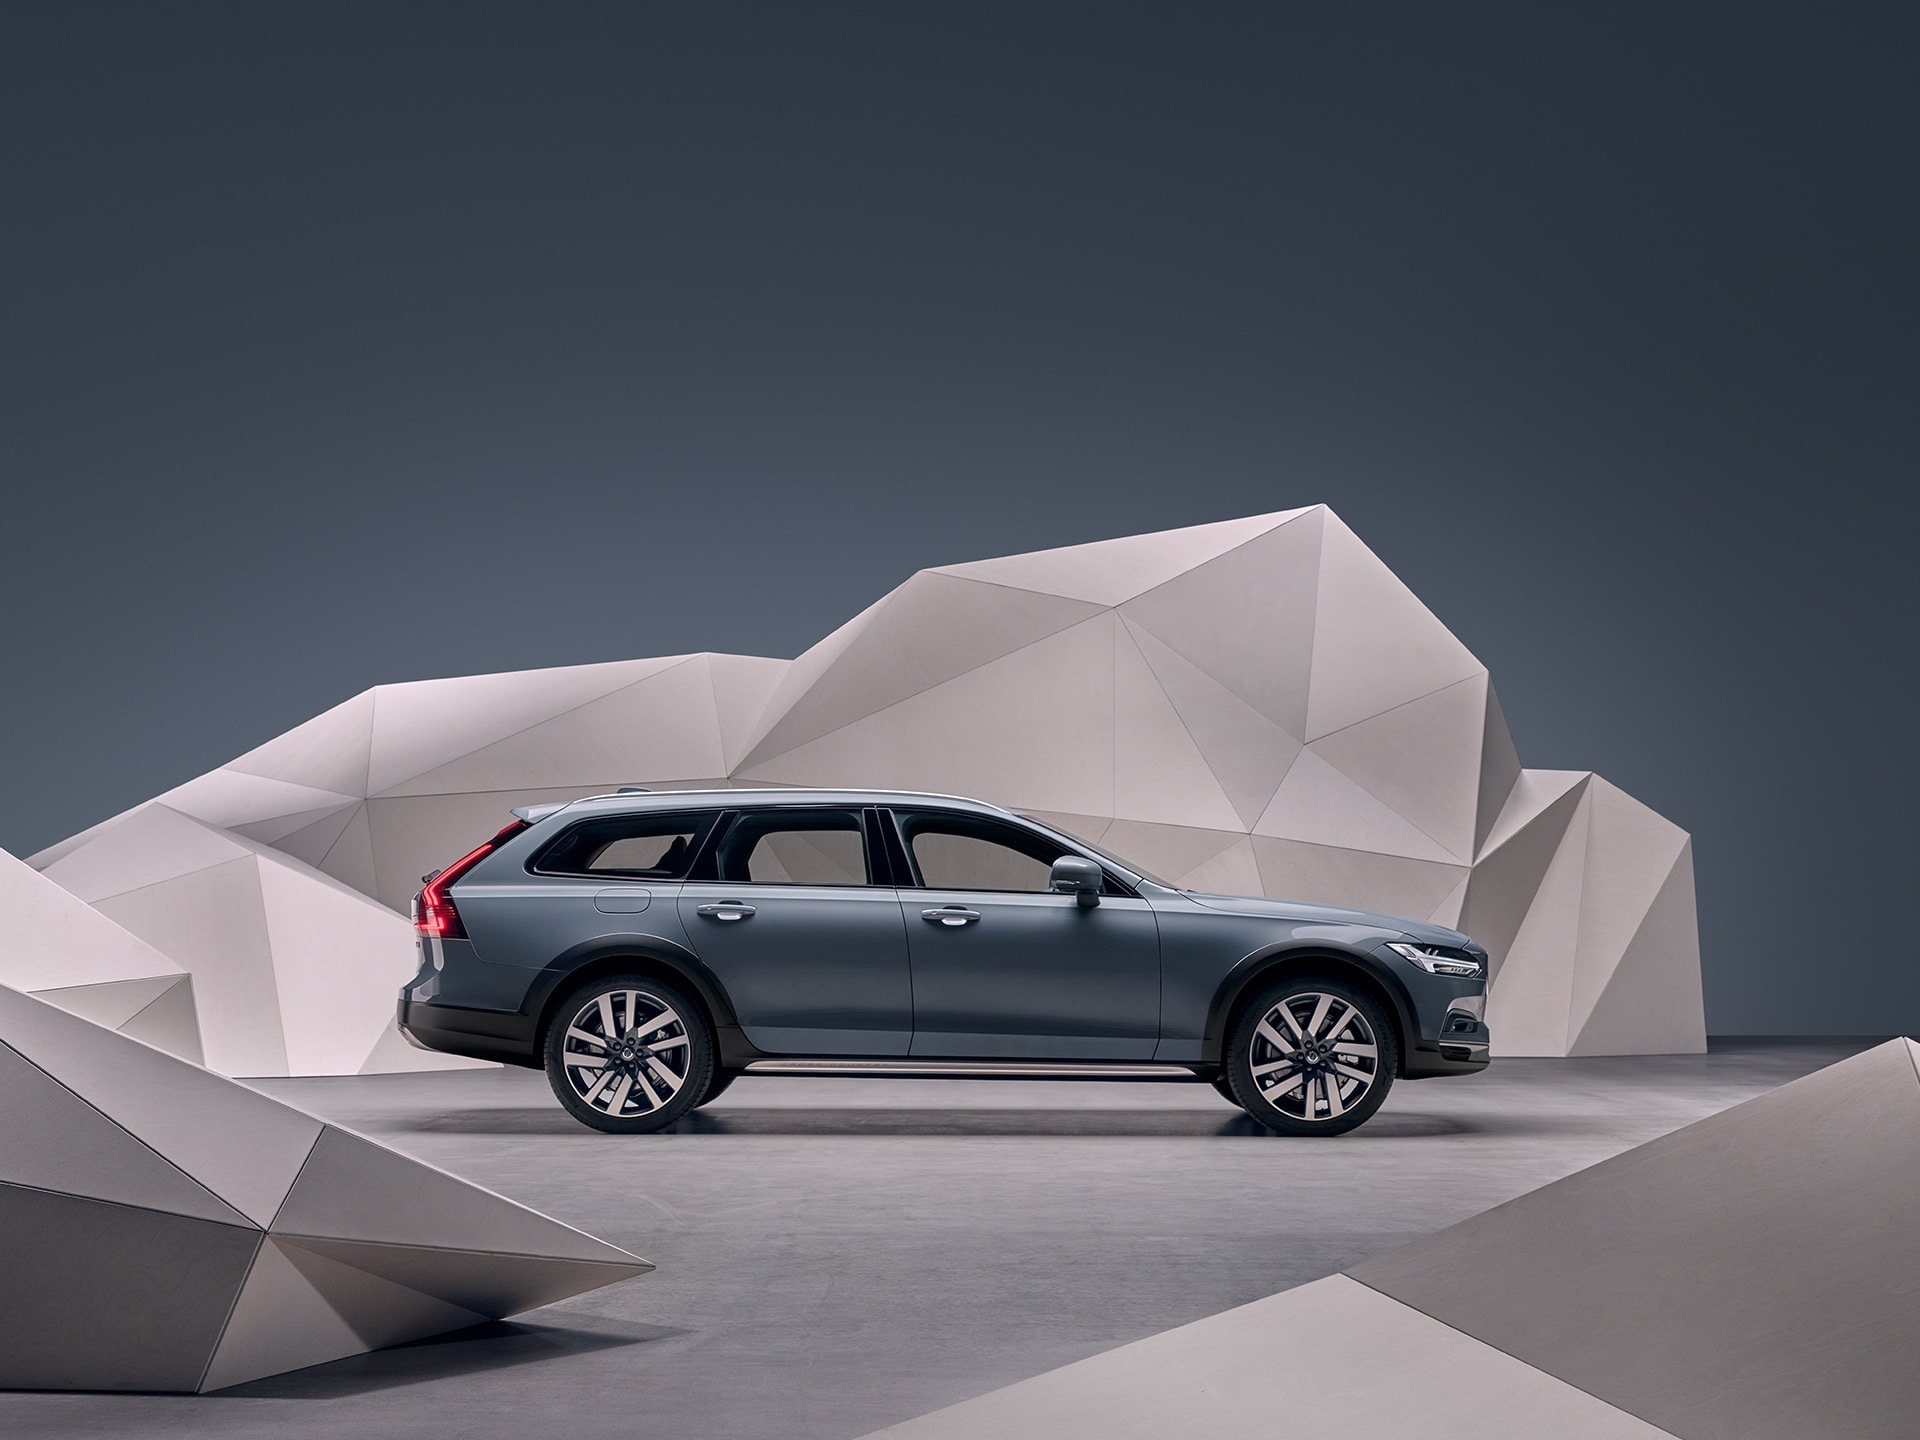 A mussel blue metallic Volvo V90 Cross Country standing in front of an artistic wall